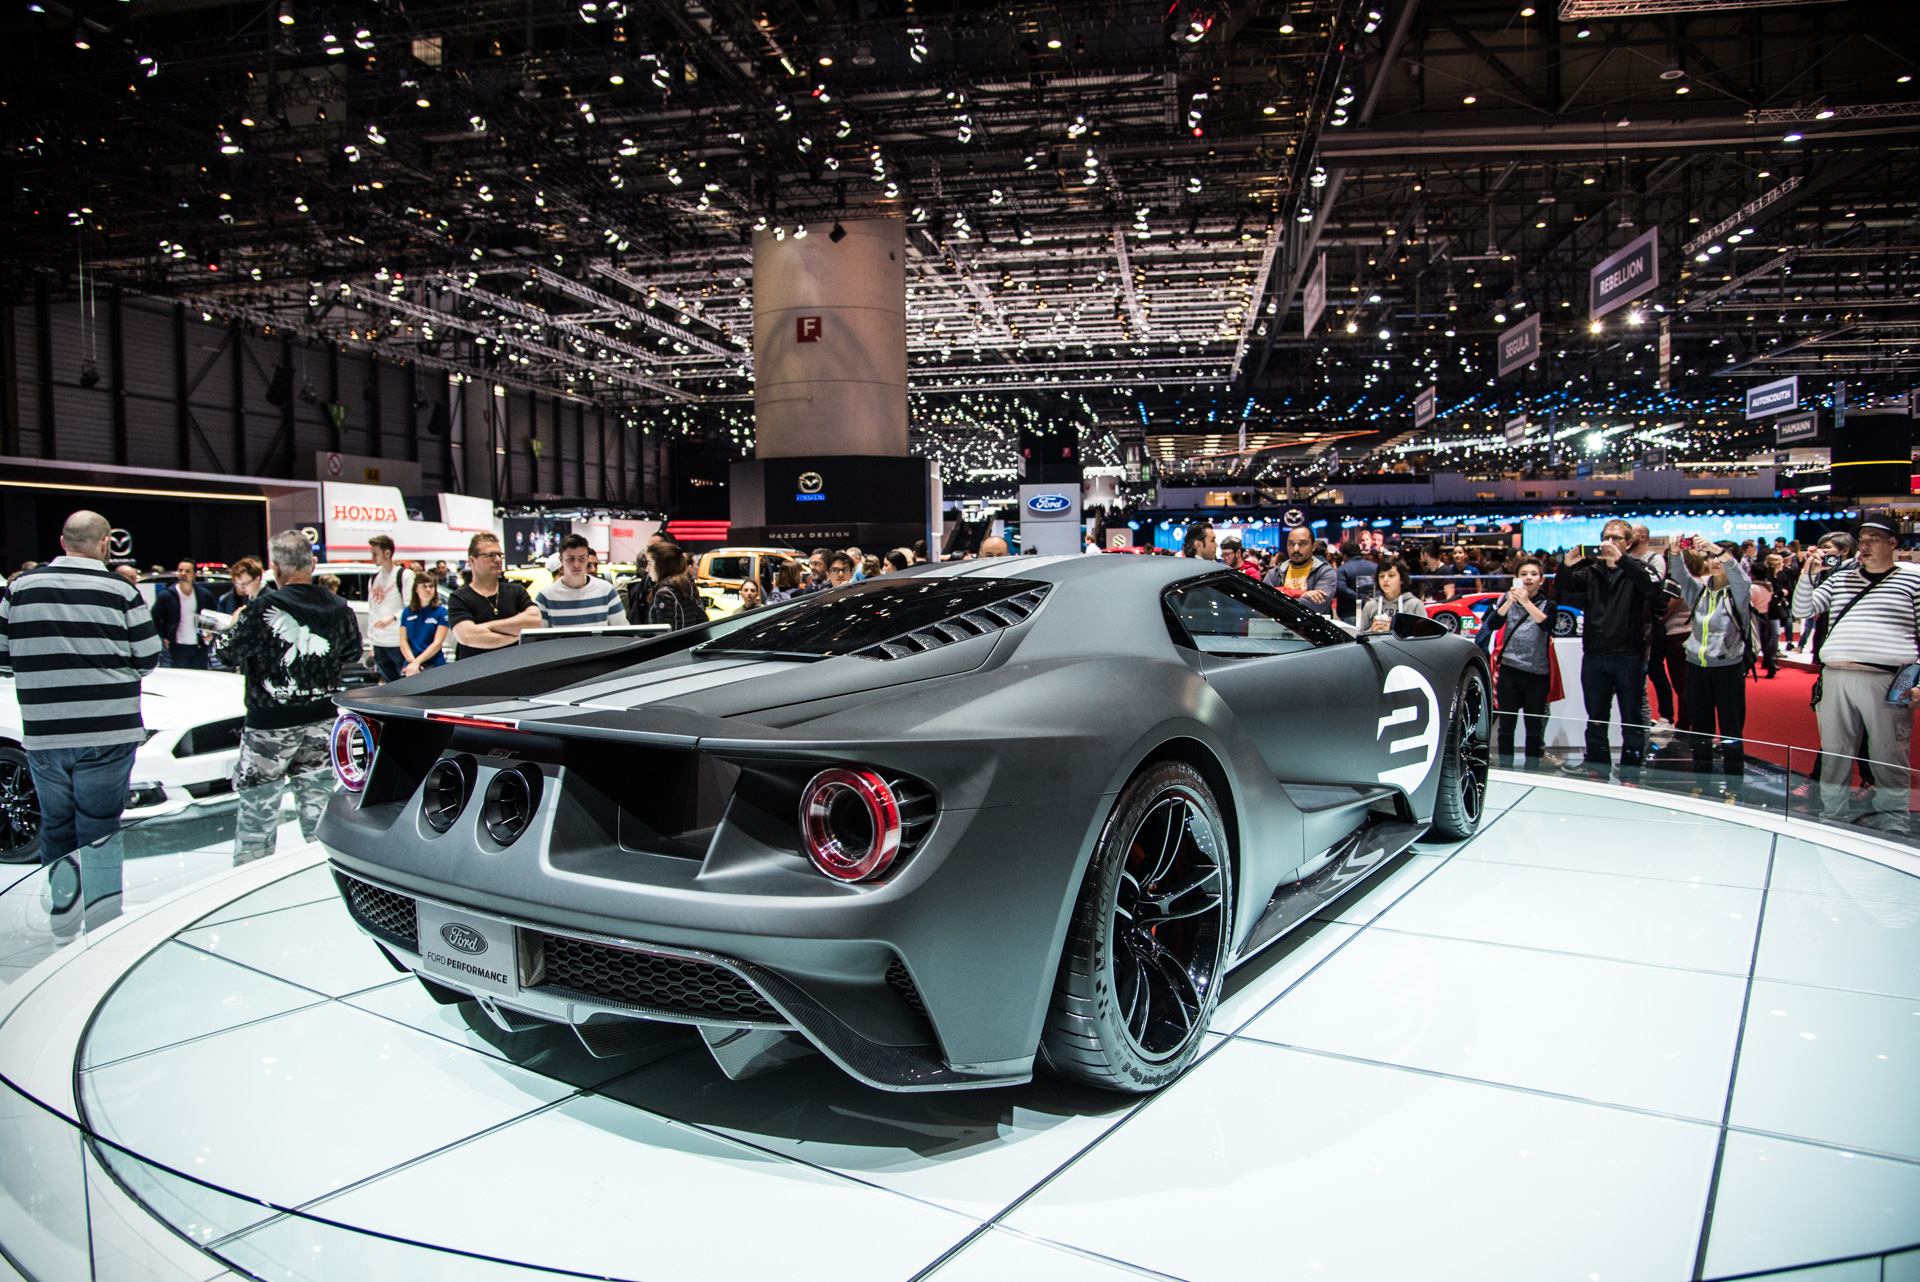 geneva-international-motor-show-igor-sinitsin-17